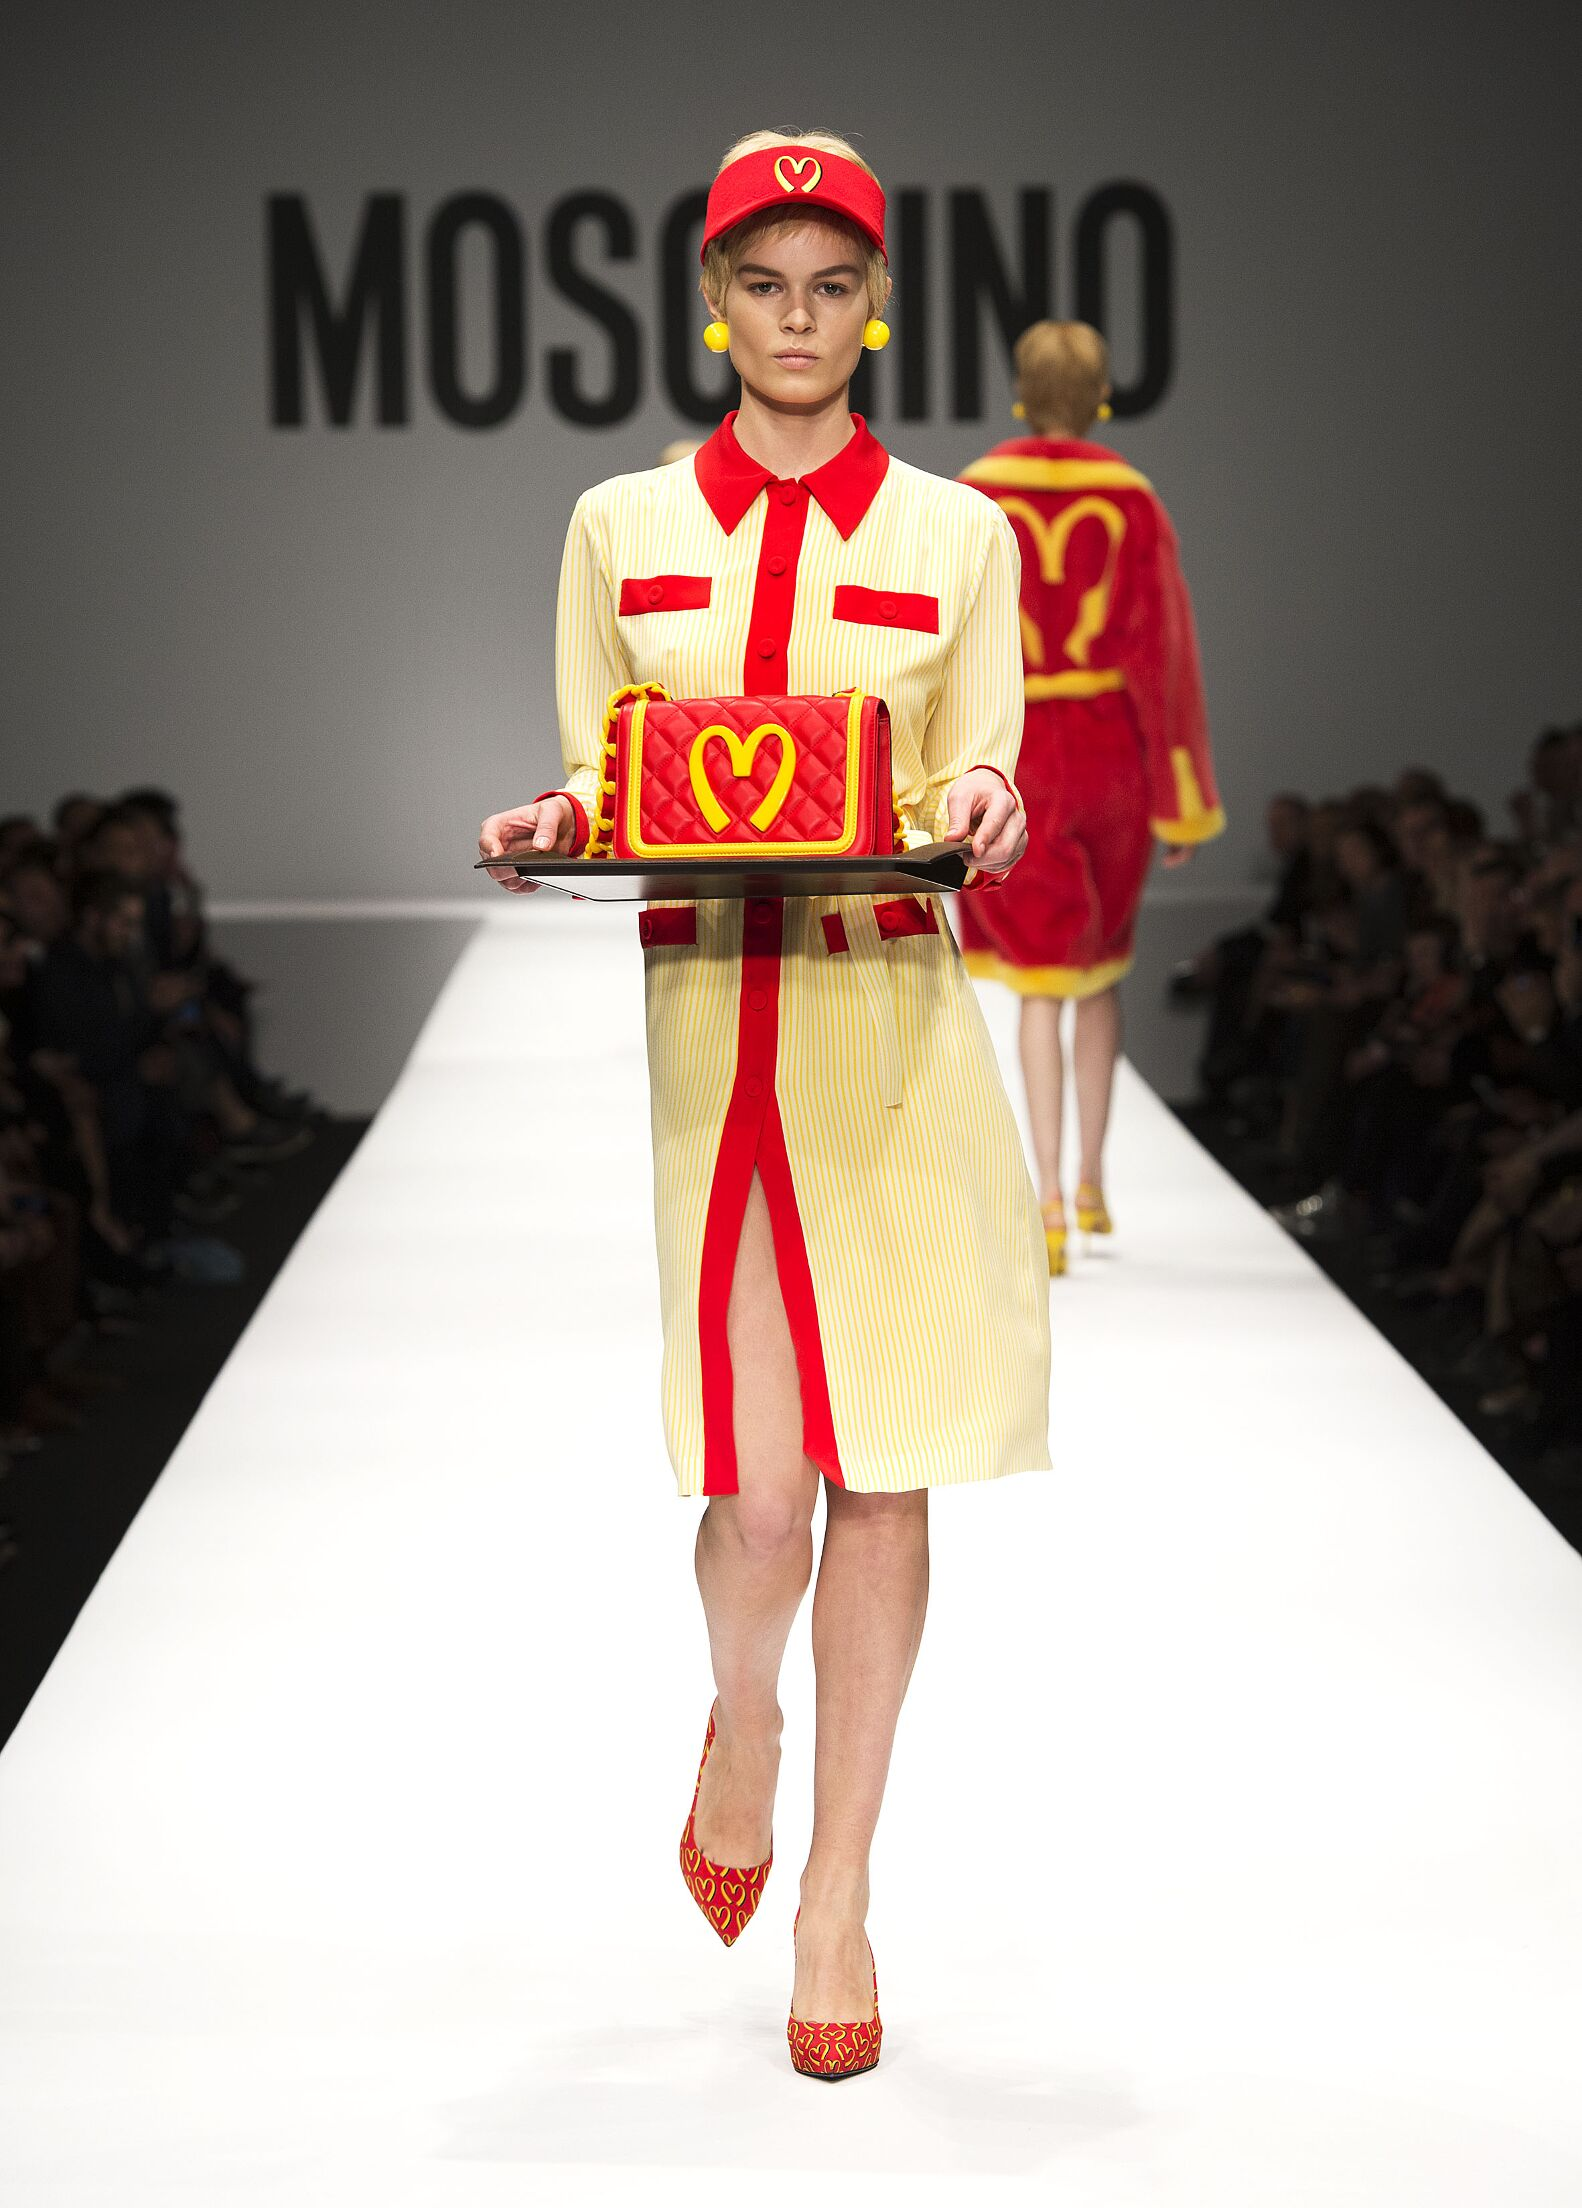 MOSCHINO FALL WINTER 2014-15 WOMEN'S COLLECTION | The Skinny Beep